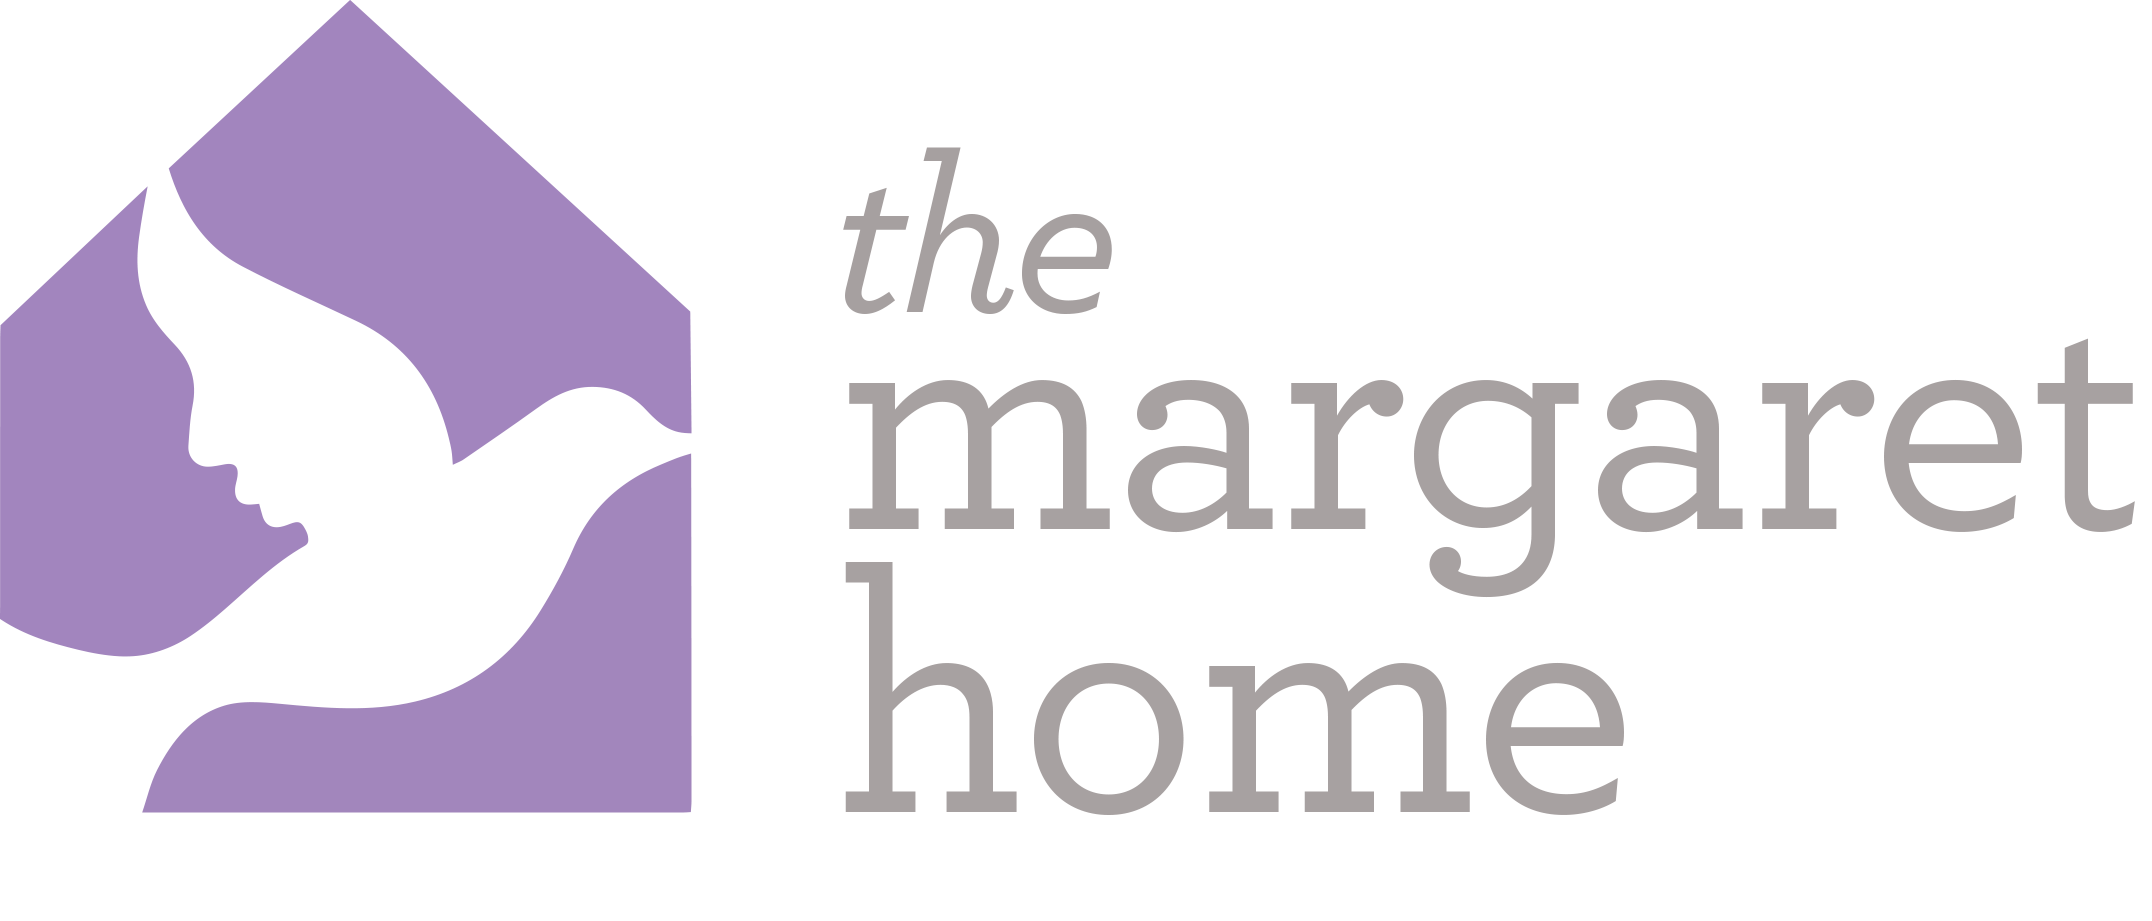 The Margaret Home